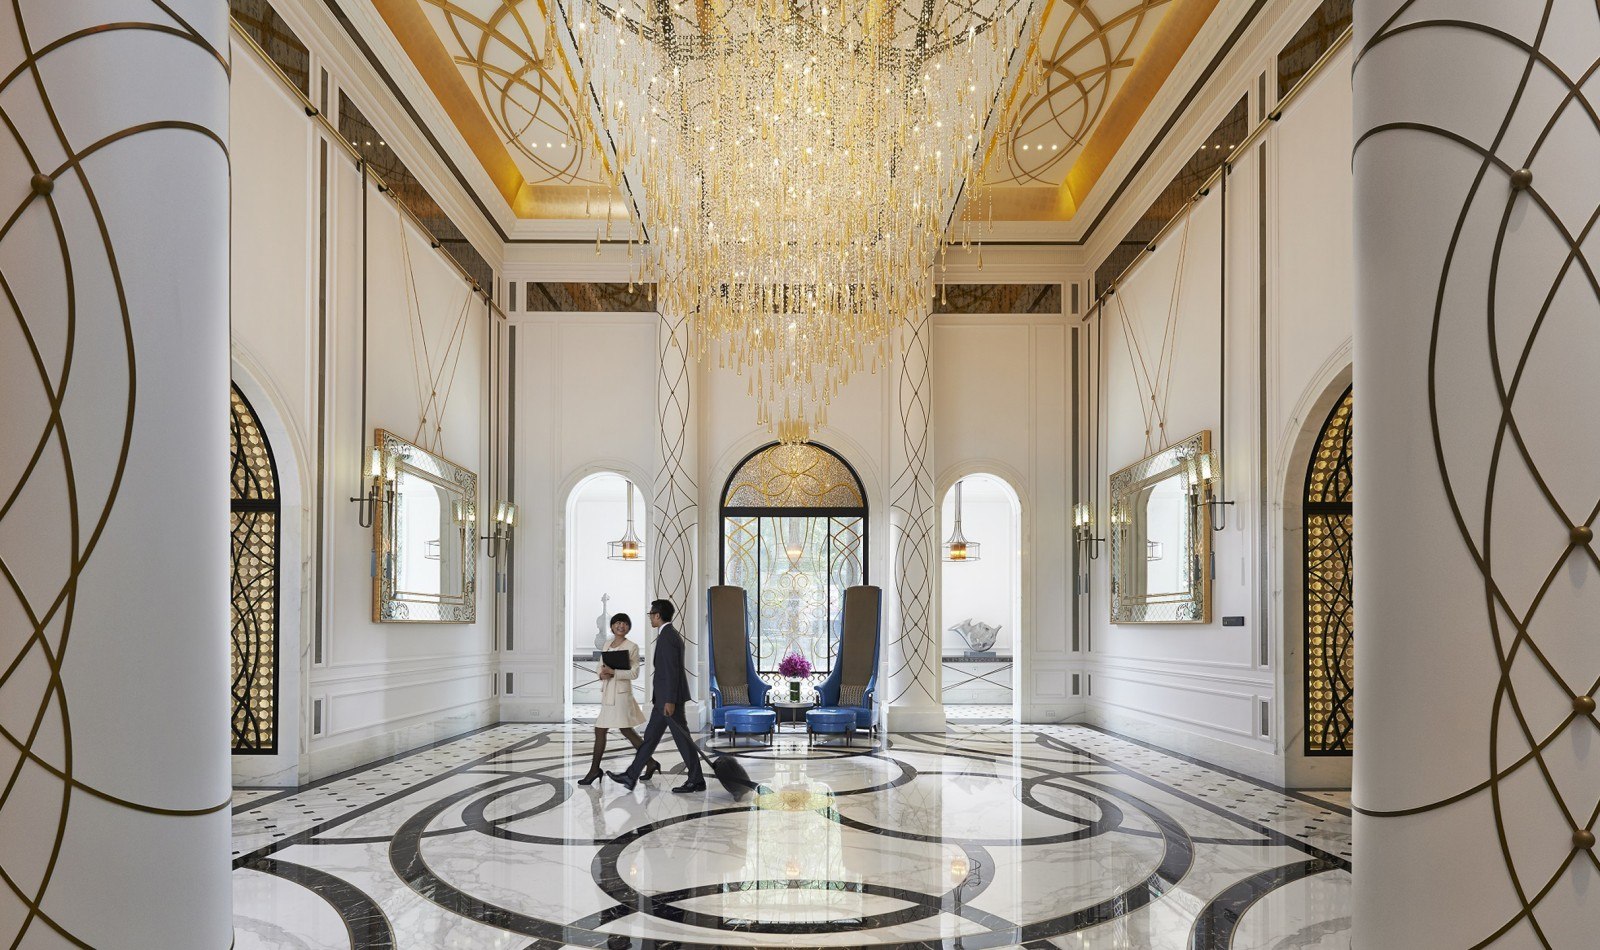 Best interior designers based in London lighting The power of lighting: incredible environments created by LUXXU London Best Interior Designers Four IV lighting The power of lighting: incredible environments created by LUXXU London Best Interior Designers Four IV